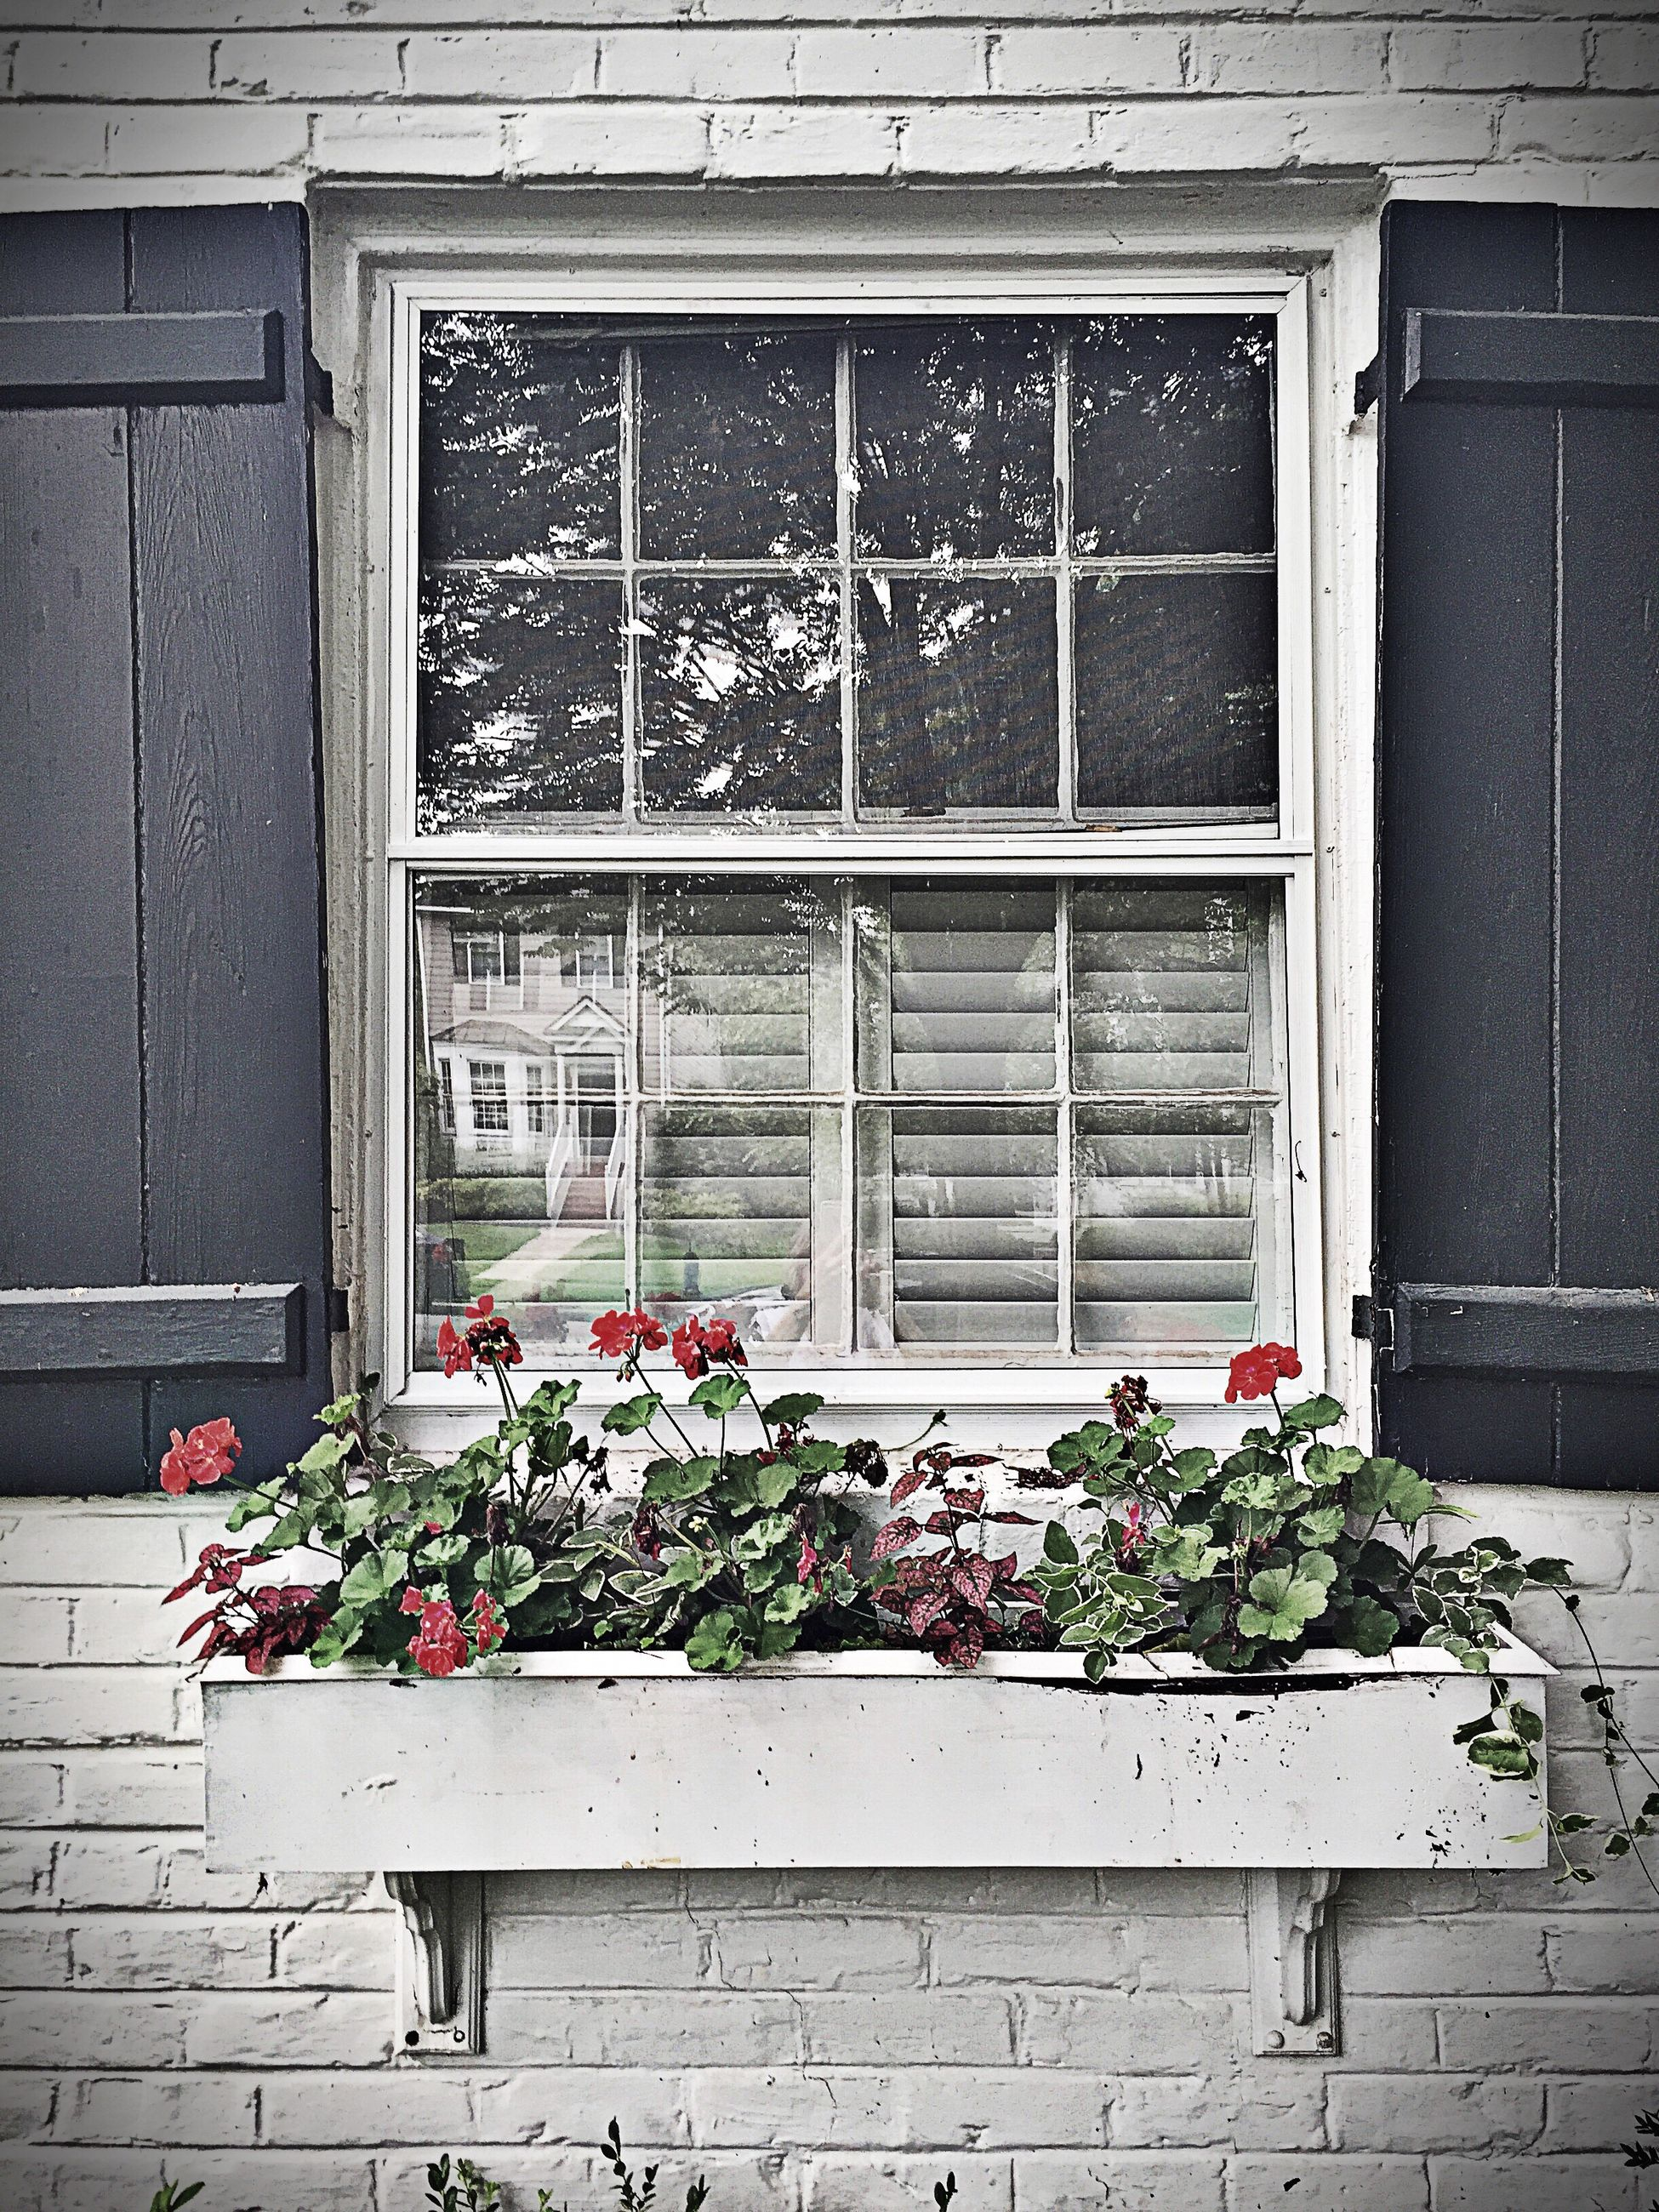 building exterior, architecture, flower, built structure, potted plant, plant, window, growth, house, flower pot, brick wall, closed, wall - building feature, door, day, ivy, wall, freshness, leaf, outdoors